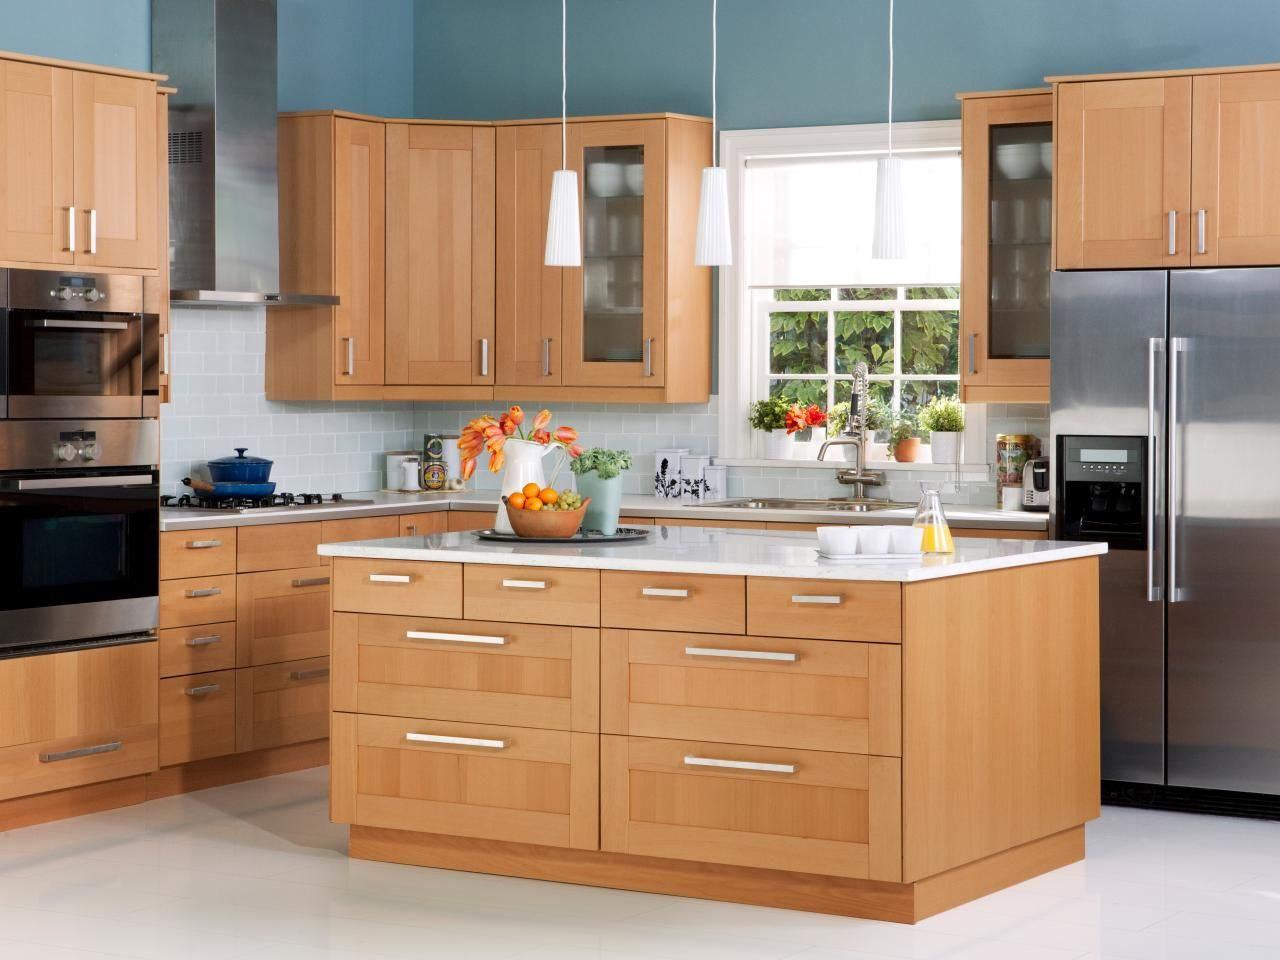 Reform Customized designer fronts for your IKEA kitchen